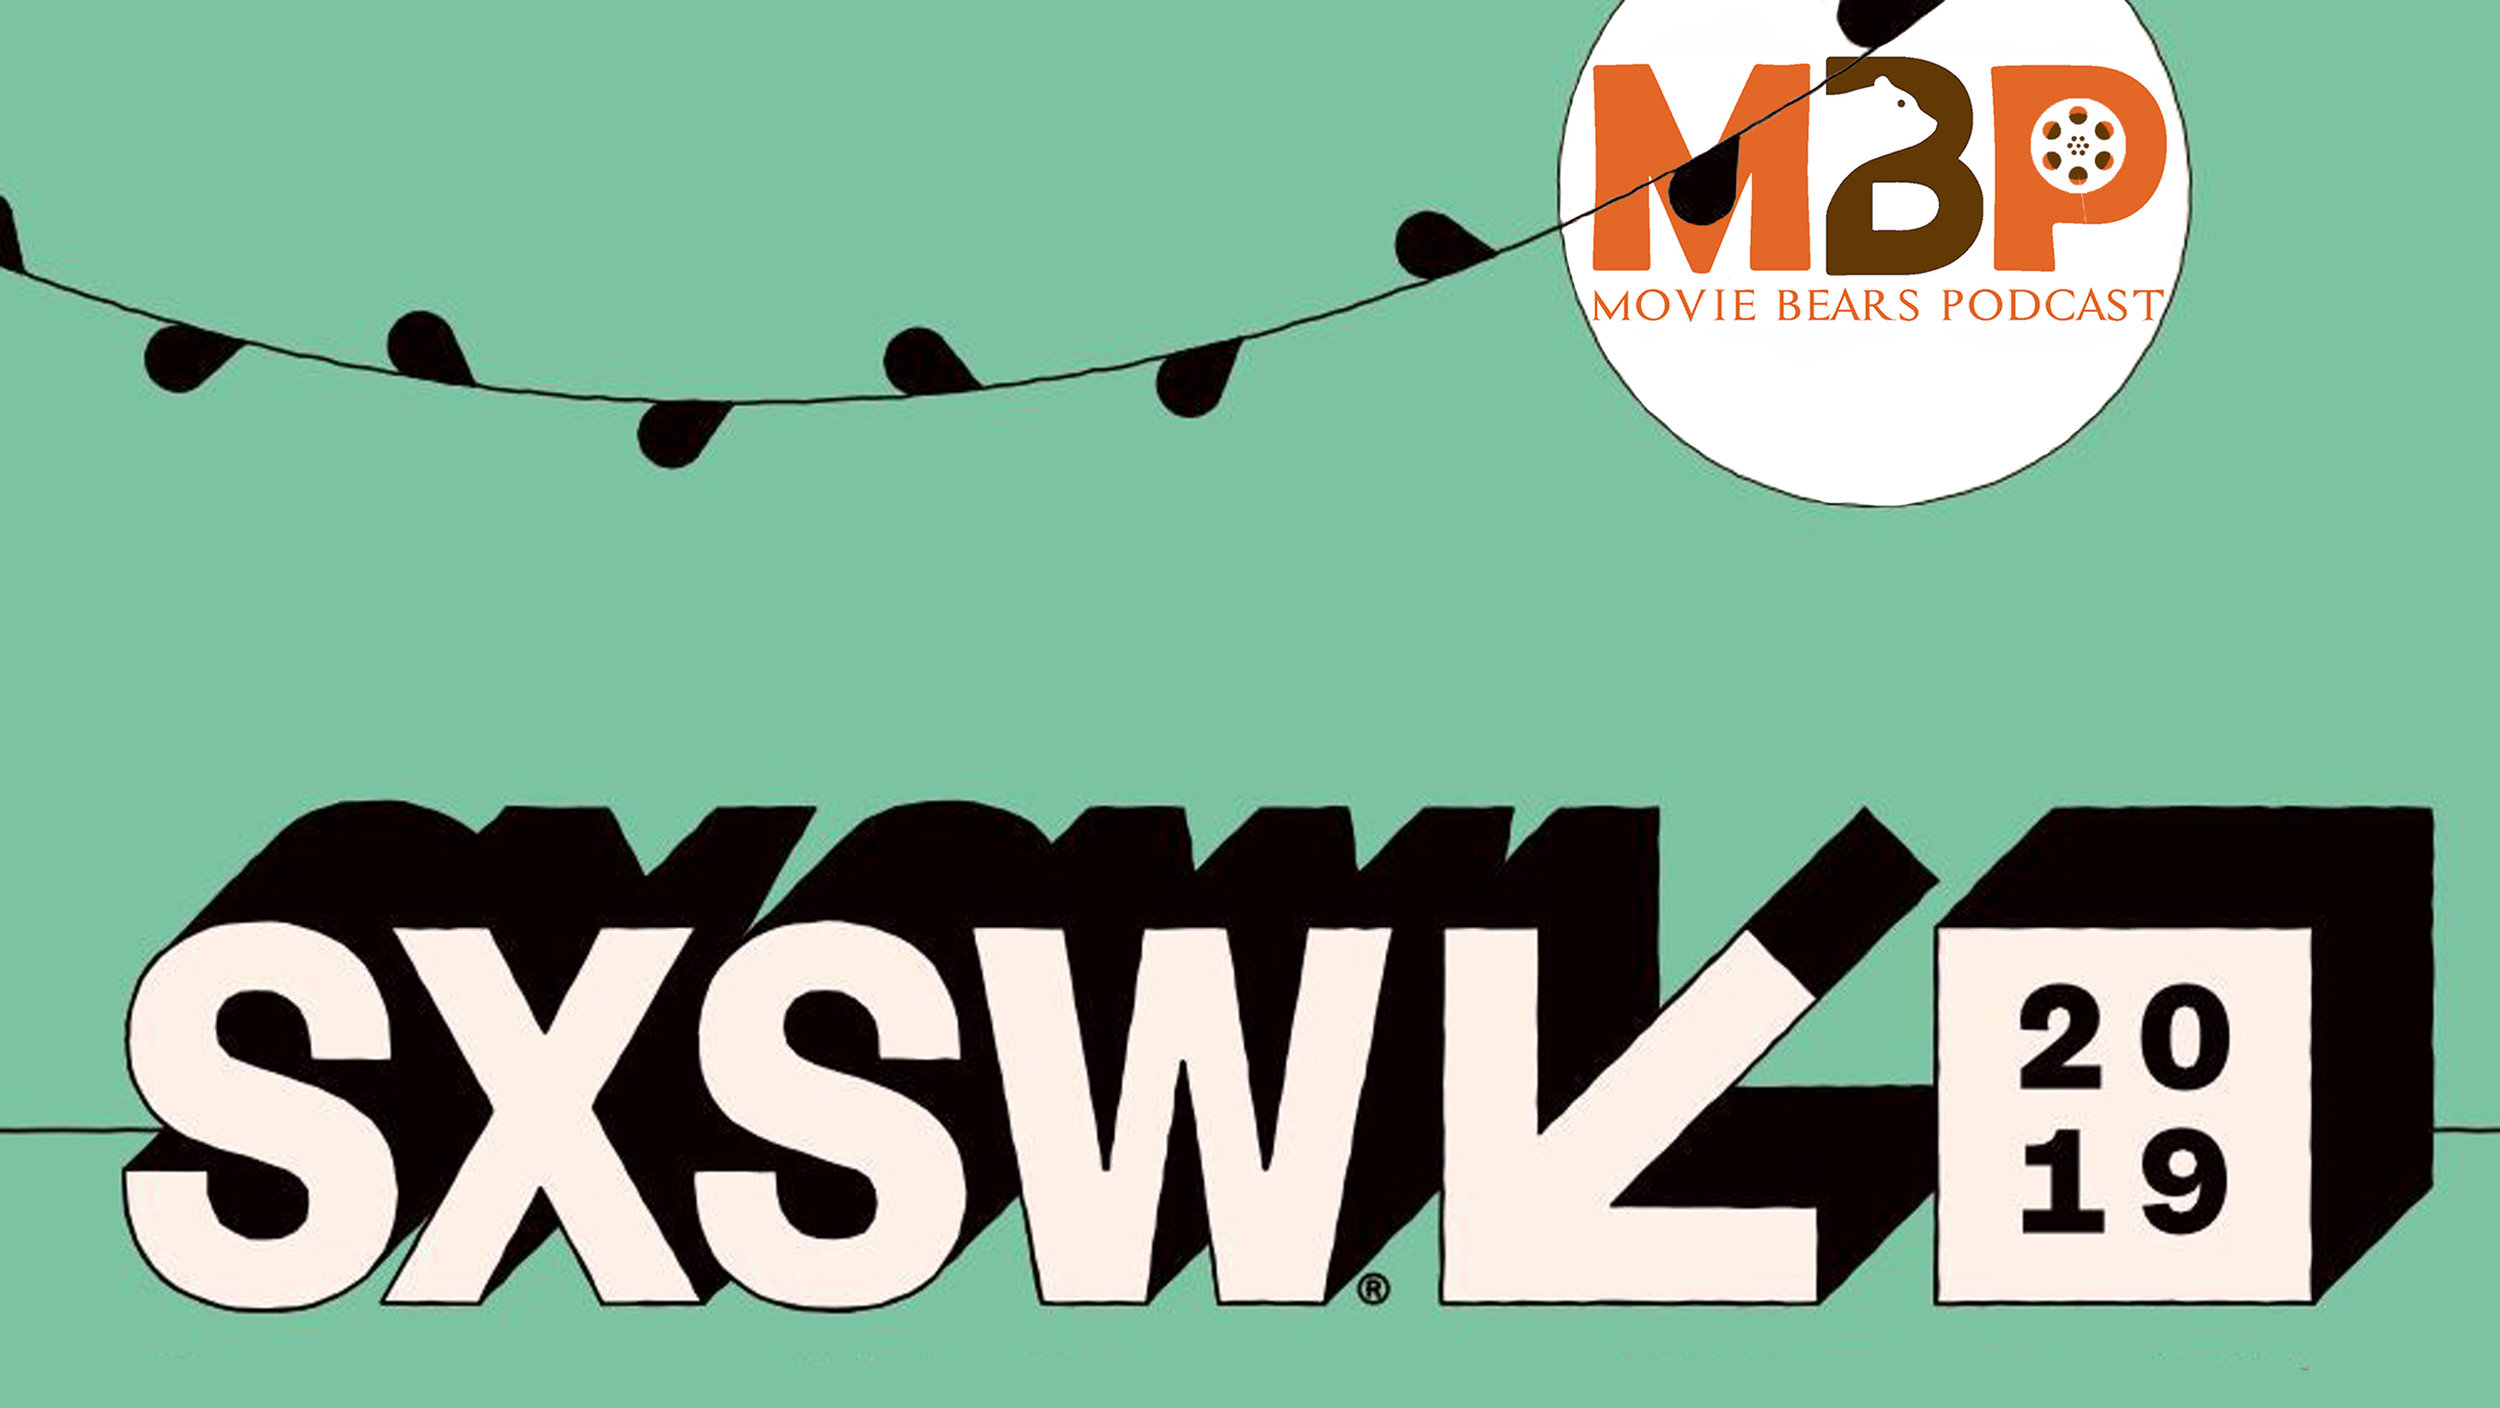 M   BP e315 -    SXSW 2019    Highlights (4/5/19)    On this episode we devote the entire show to talking about the many movie highlights and also our personal favorite films from the 2019 #SXSW Film Festival in Austin, TX. This year was another great lineup of films across many genres. So take note of the films that we think are likely to make some noise and that you'll be wanting to see soon! #SXSW2019